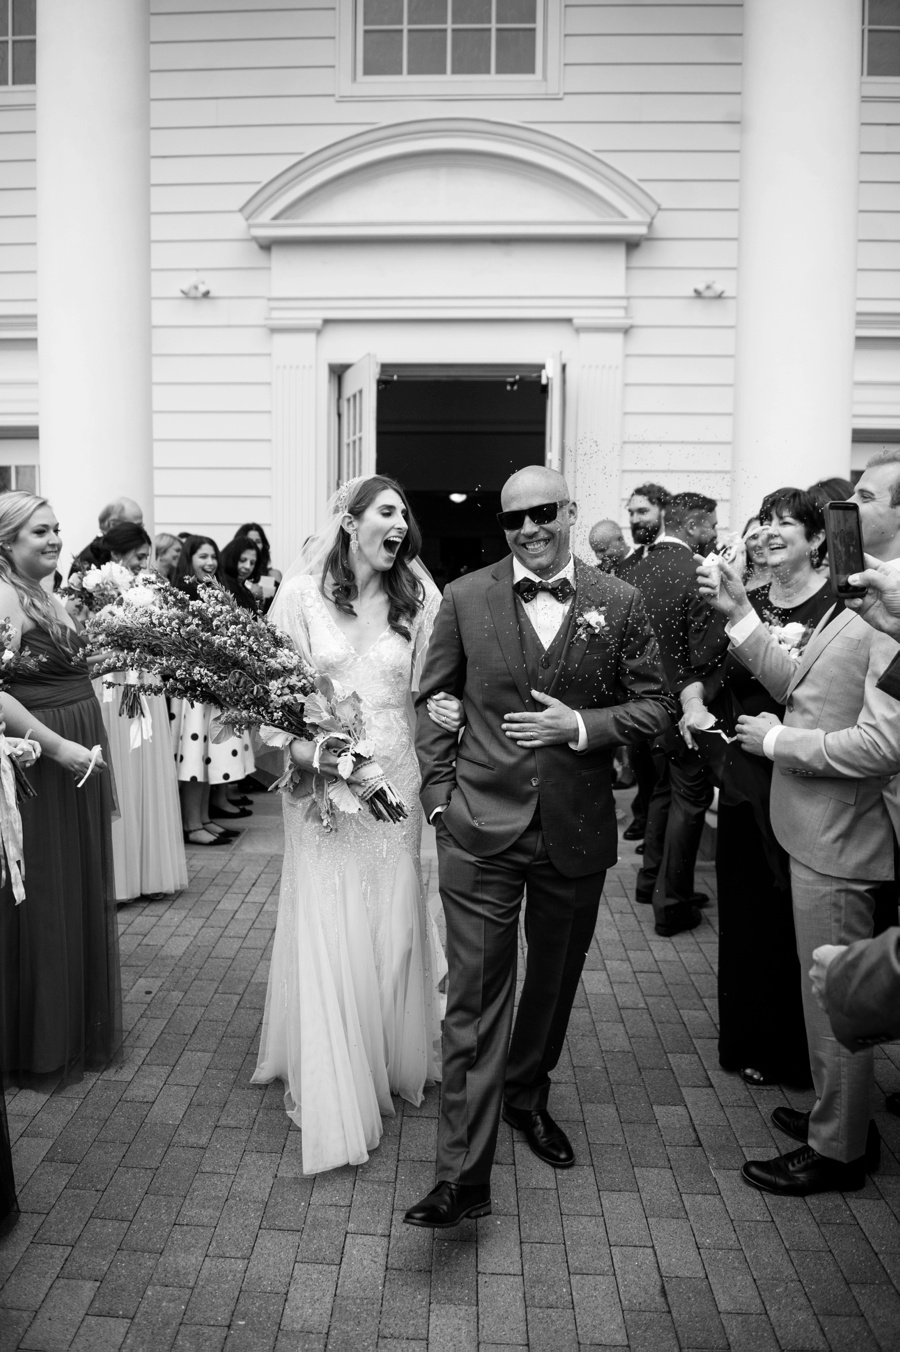 RKP_RUMSON_COUNTRY_CLUB_NJ_WEDDING_036.jpg